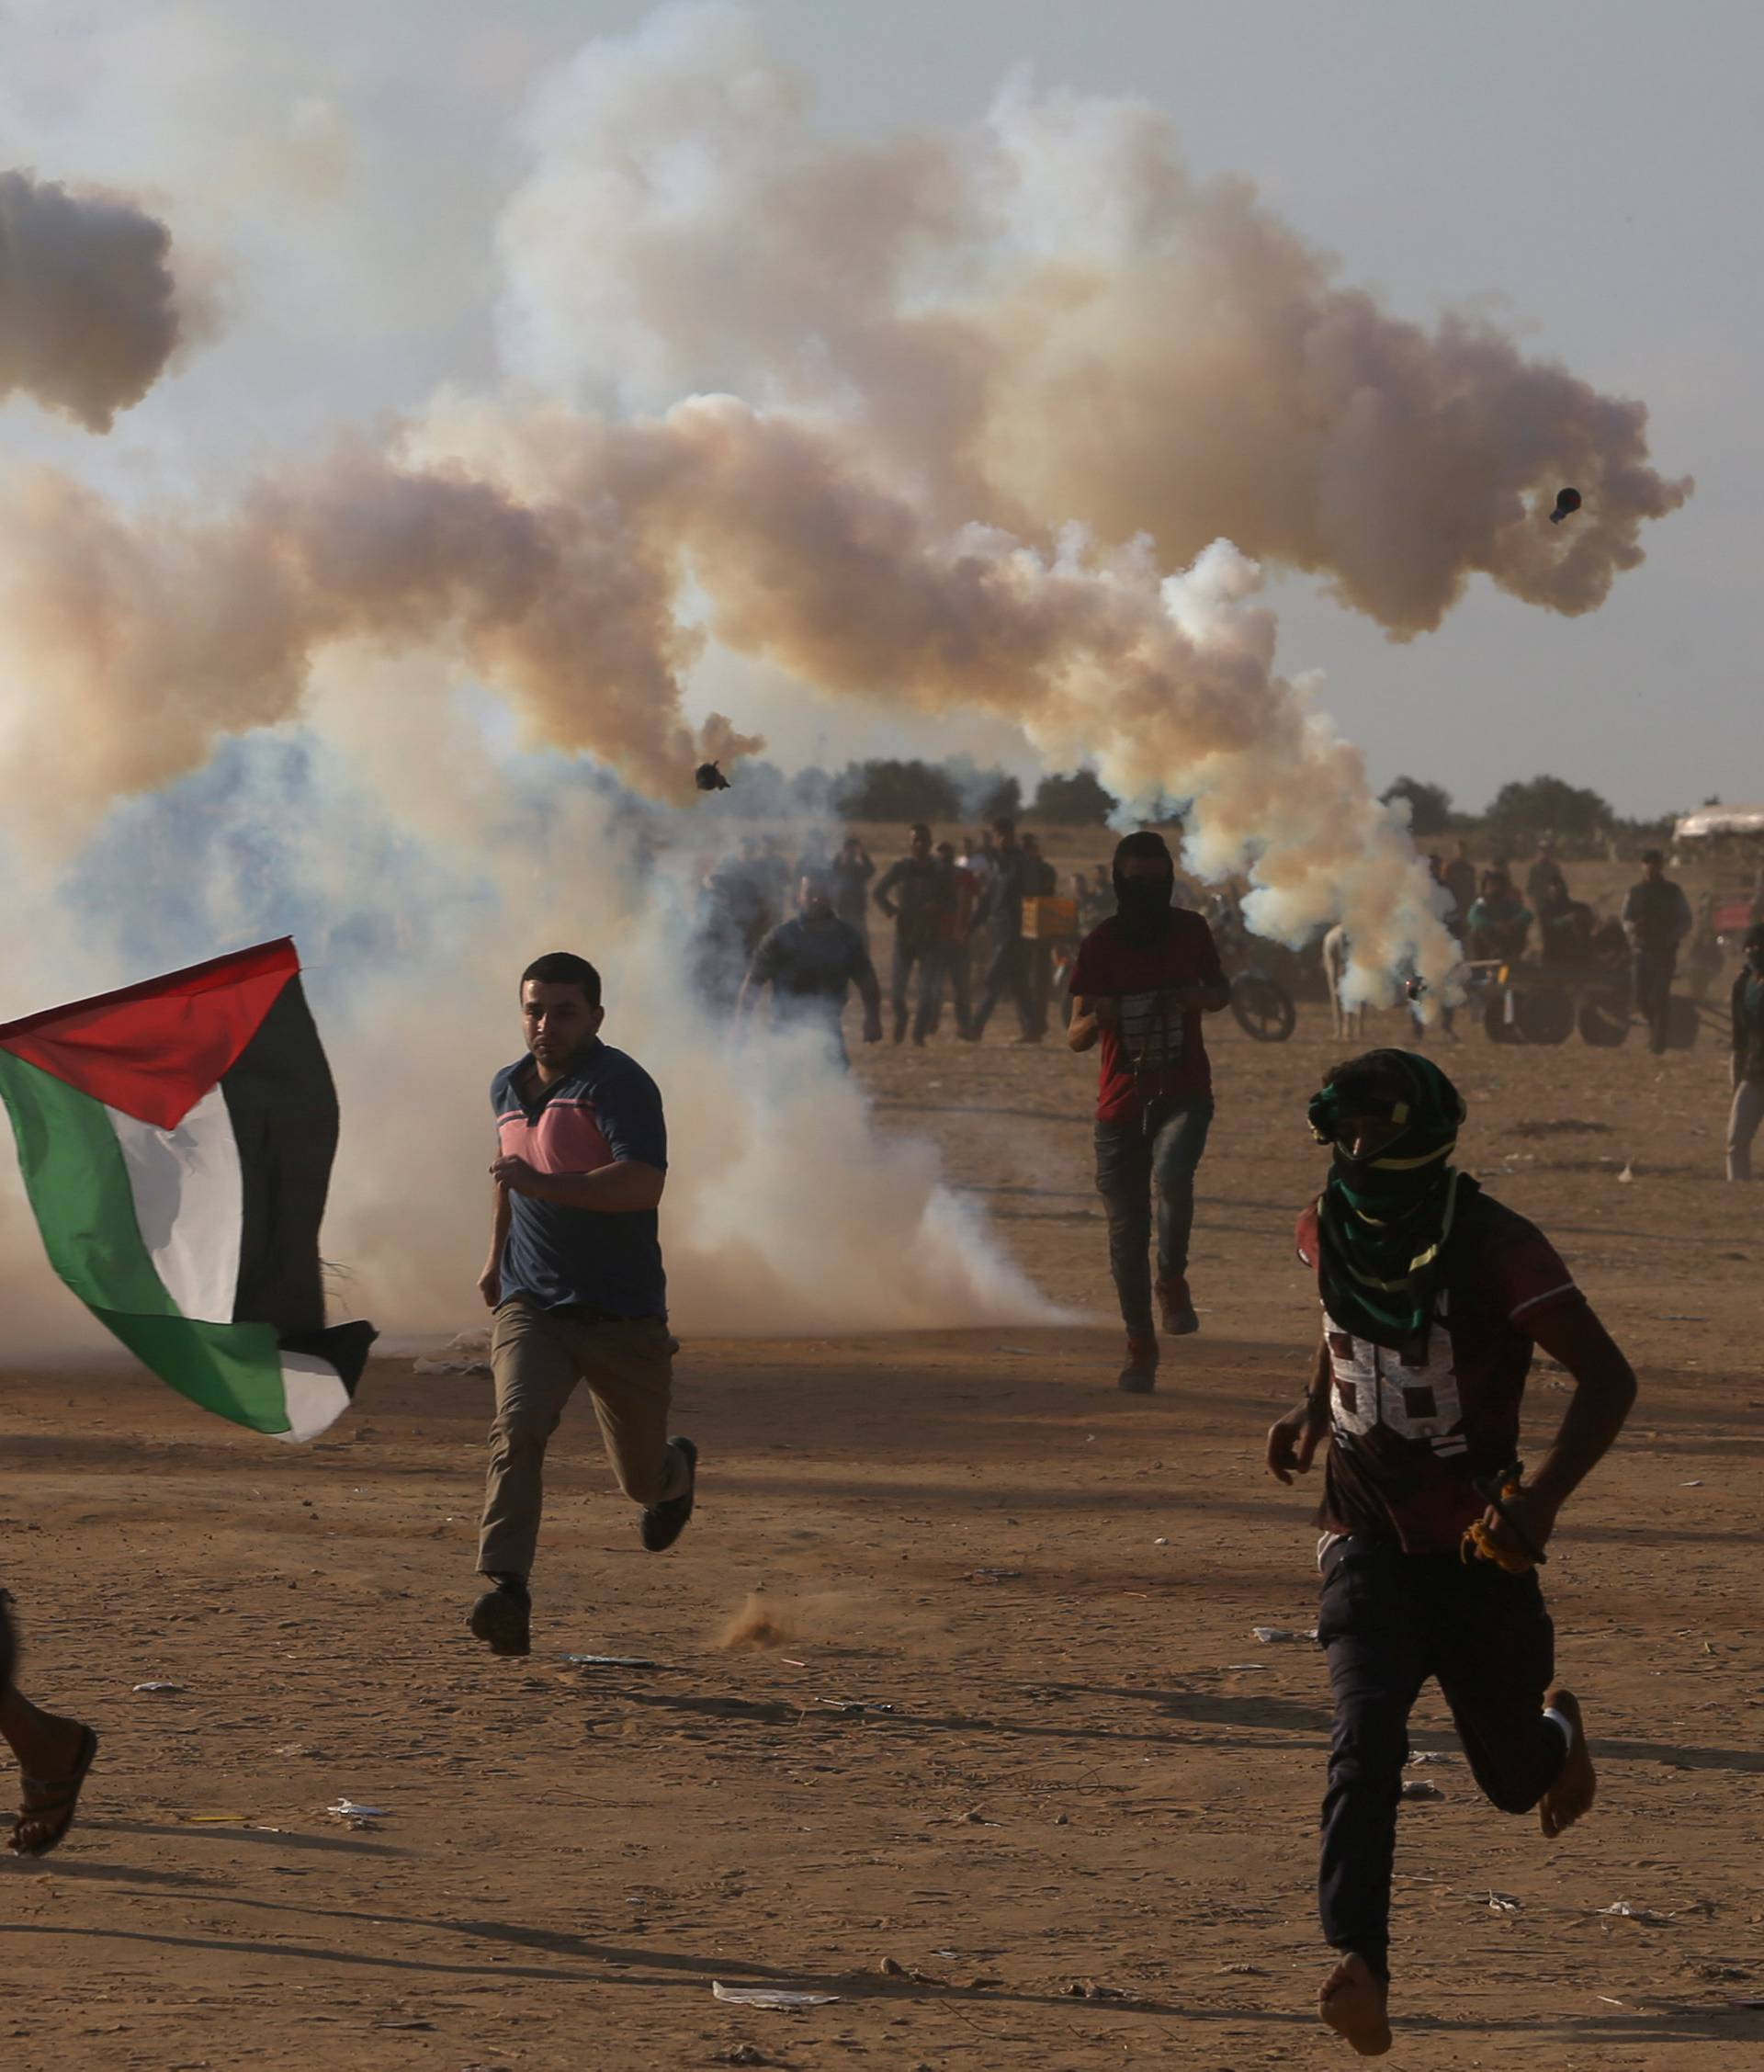 Palestinian demonstrators run from tear gas fired by Israeli troops during a protest marking the 70th anniversary of Nakba, at the Israel-Gaza border in the southern Gaza Strip